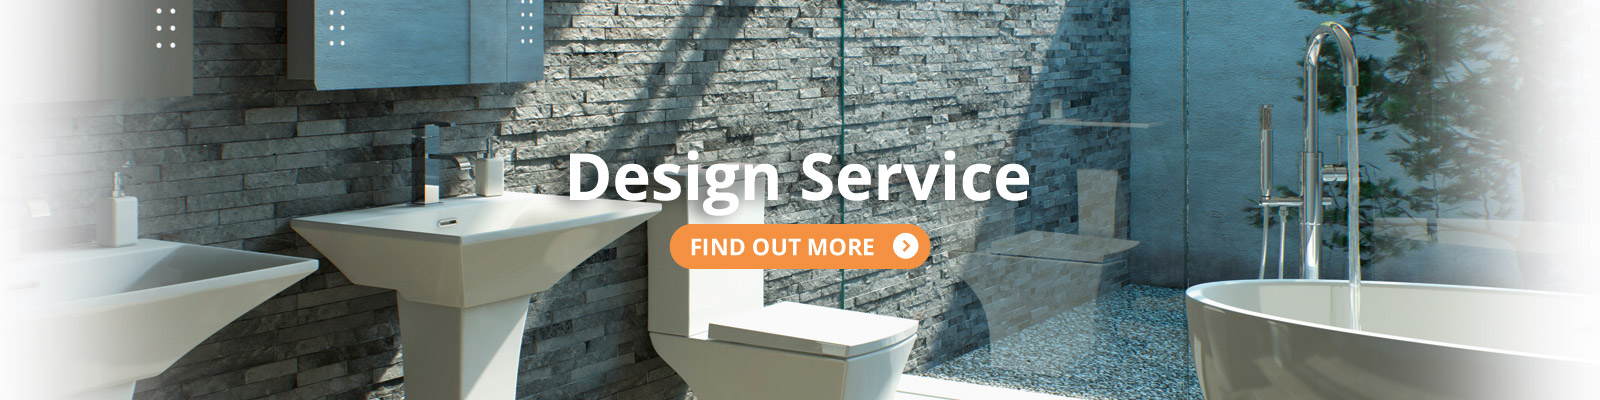 Design Service - Find out more